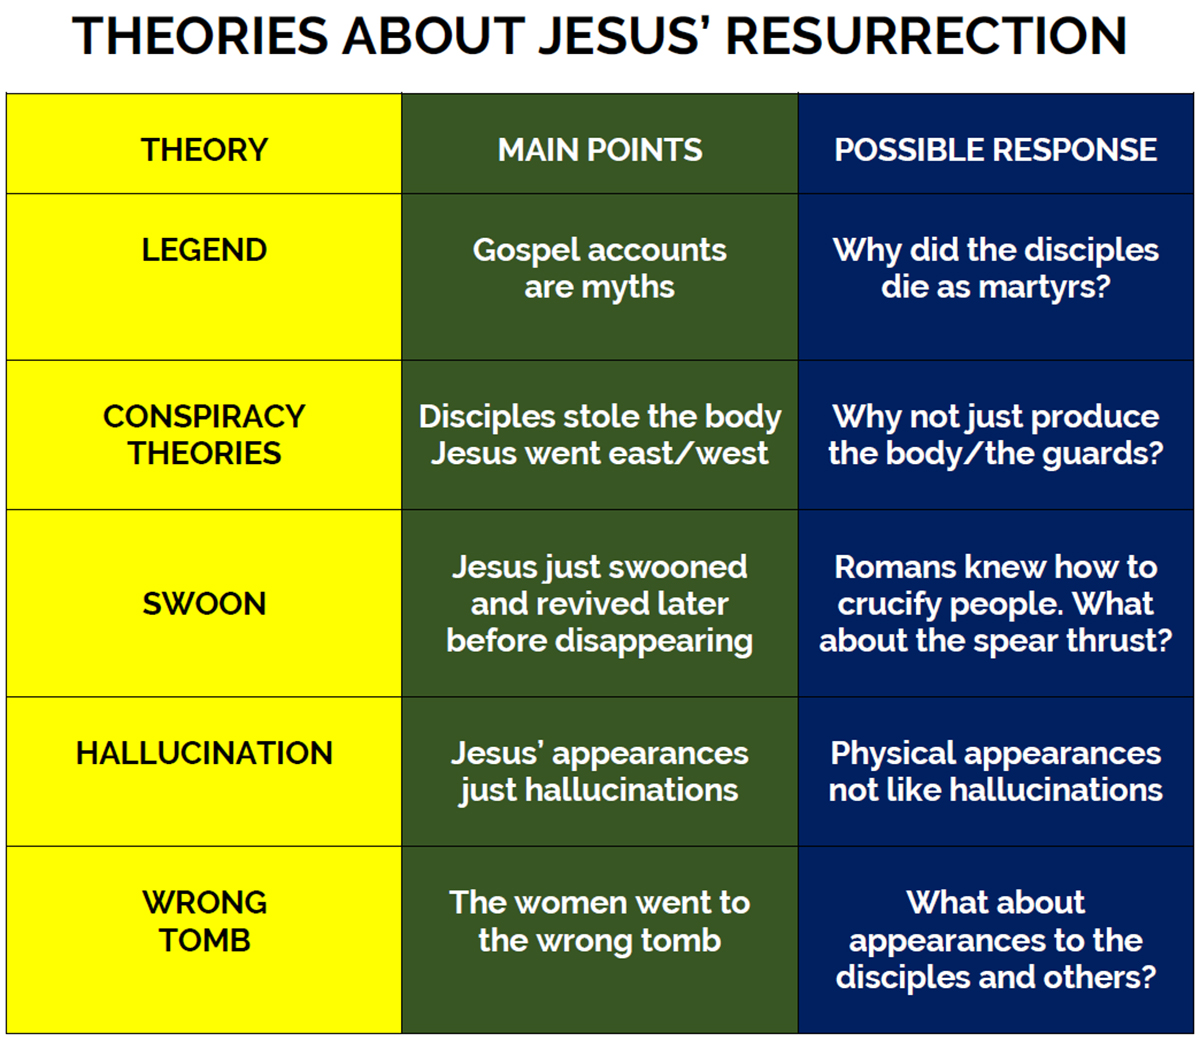 RESURRECTION THEORIES